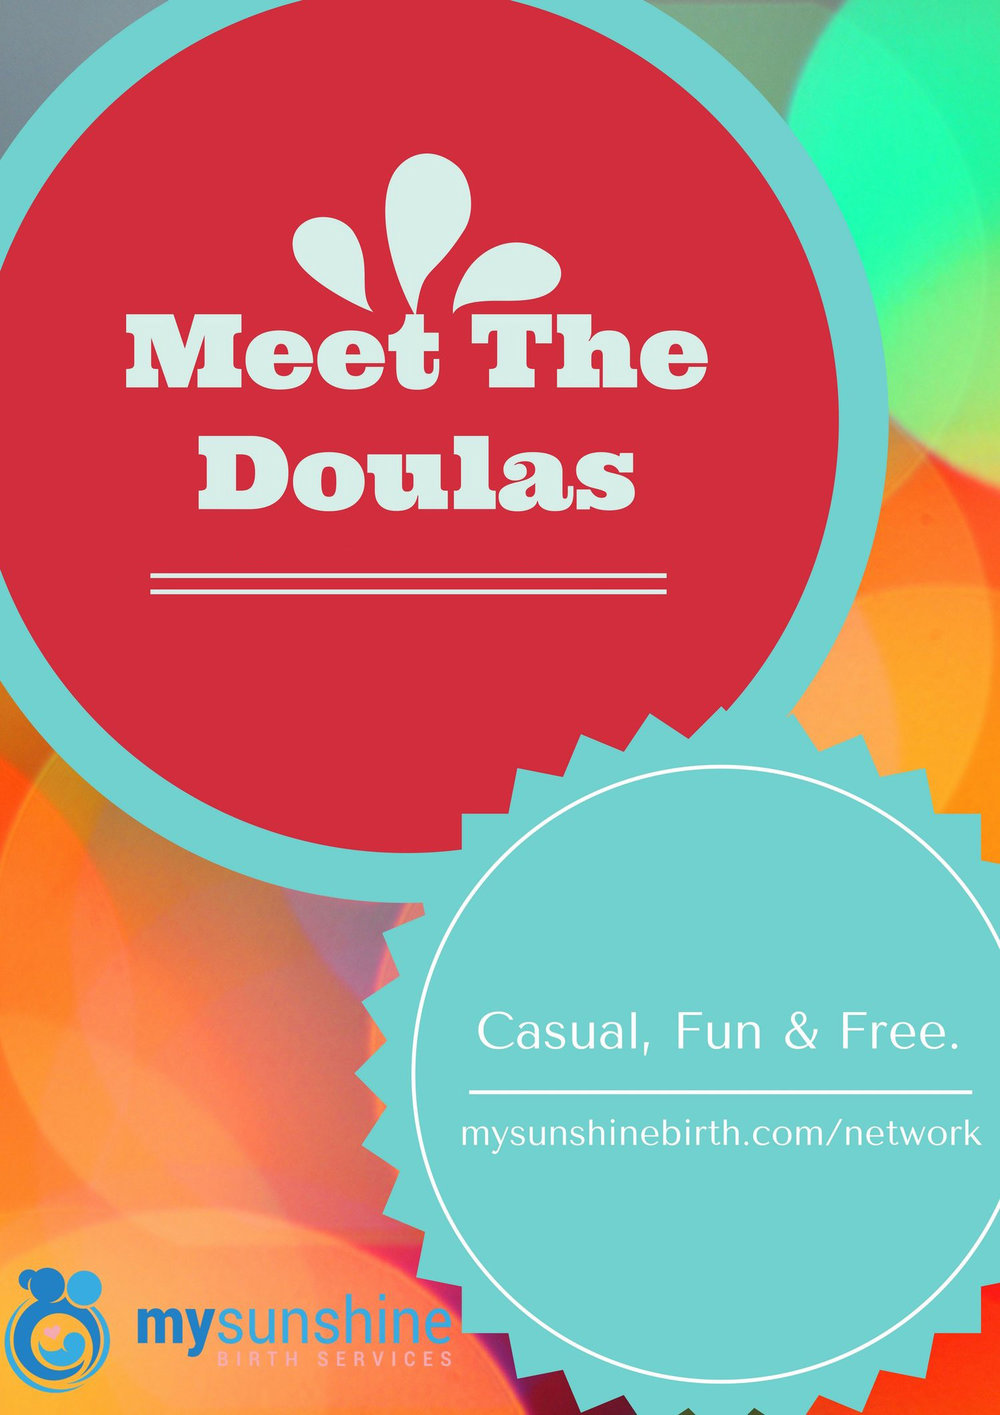 Meet The Doulas - Meet the Doulas is a casual, fun and FREE event where you can meet and chat with local Doulas. Expect to meet local Doulas working in birth, bereavement and postpartum along with childbirth educators, lactation specialists, VBAC specialists, and birth photographers. We hope to see you there!